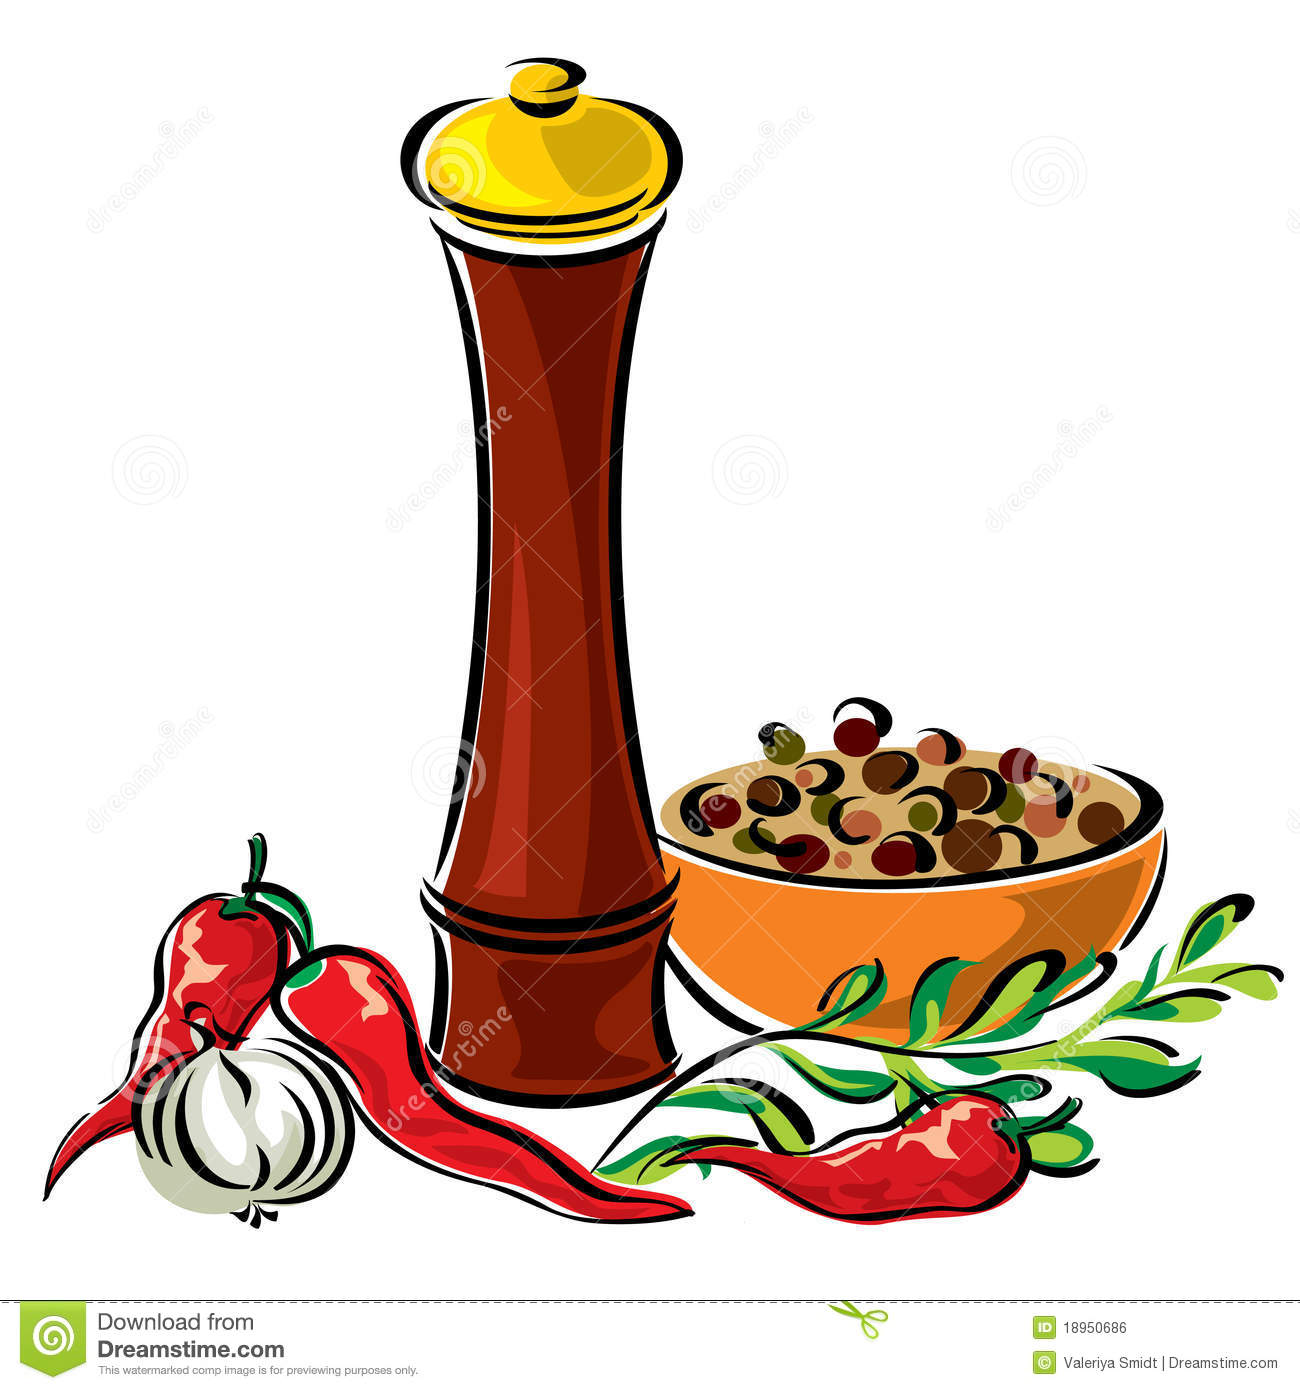 Spices clipart vector Spice Spices Clipart Seasoning cliparts